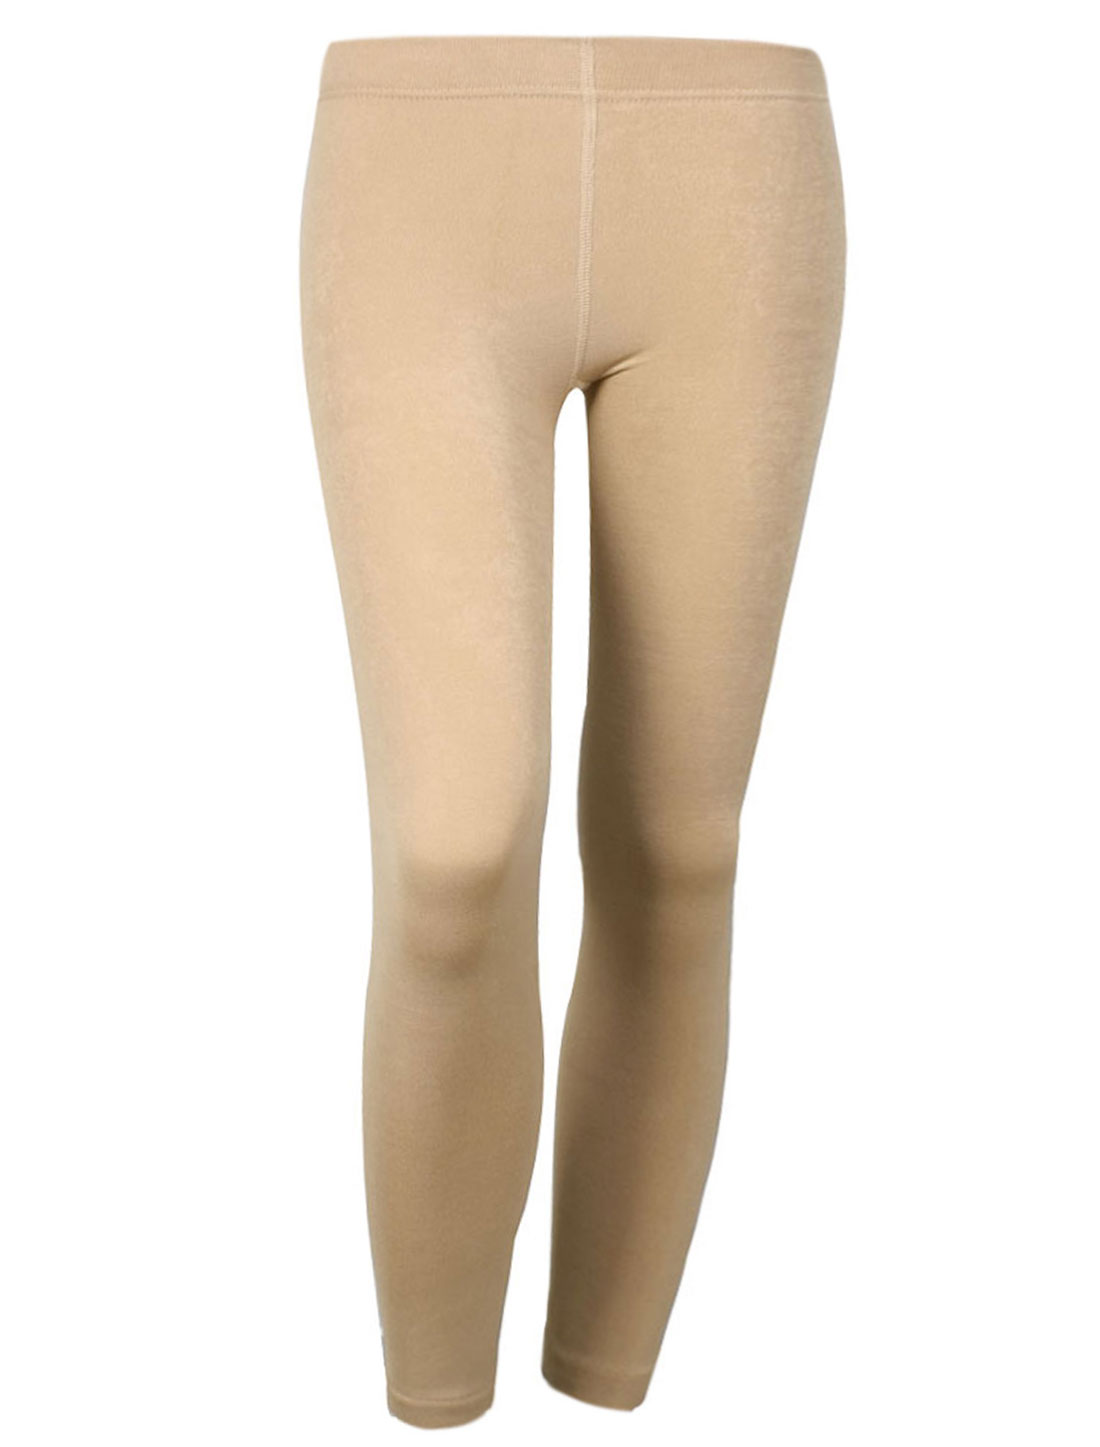 Women Warm Footless Stretch Skinny Pants Leggings Trousers Beige XS